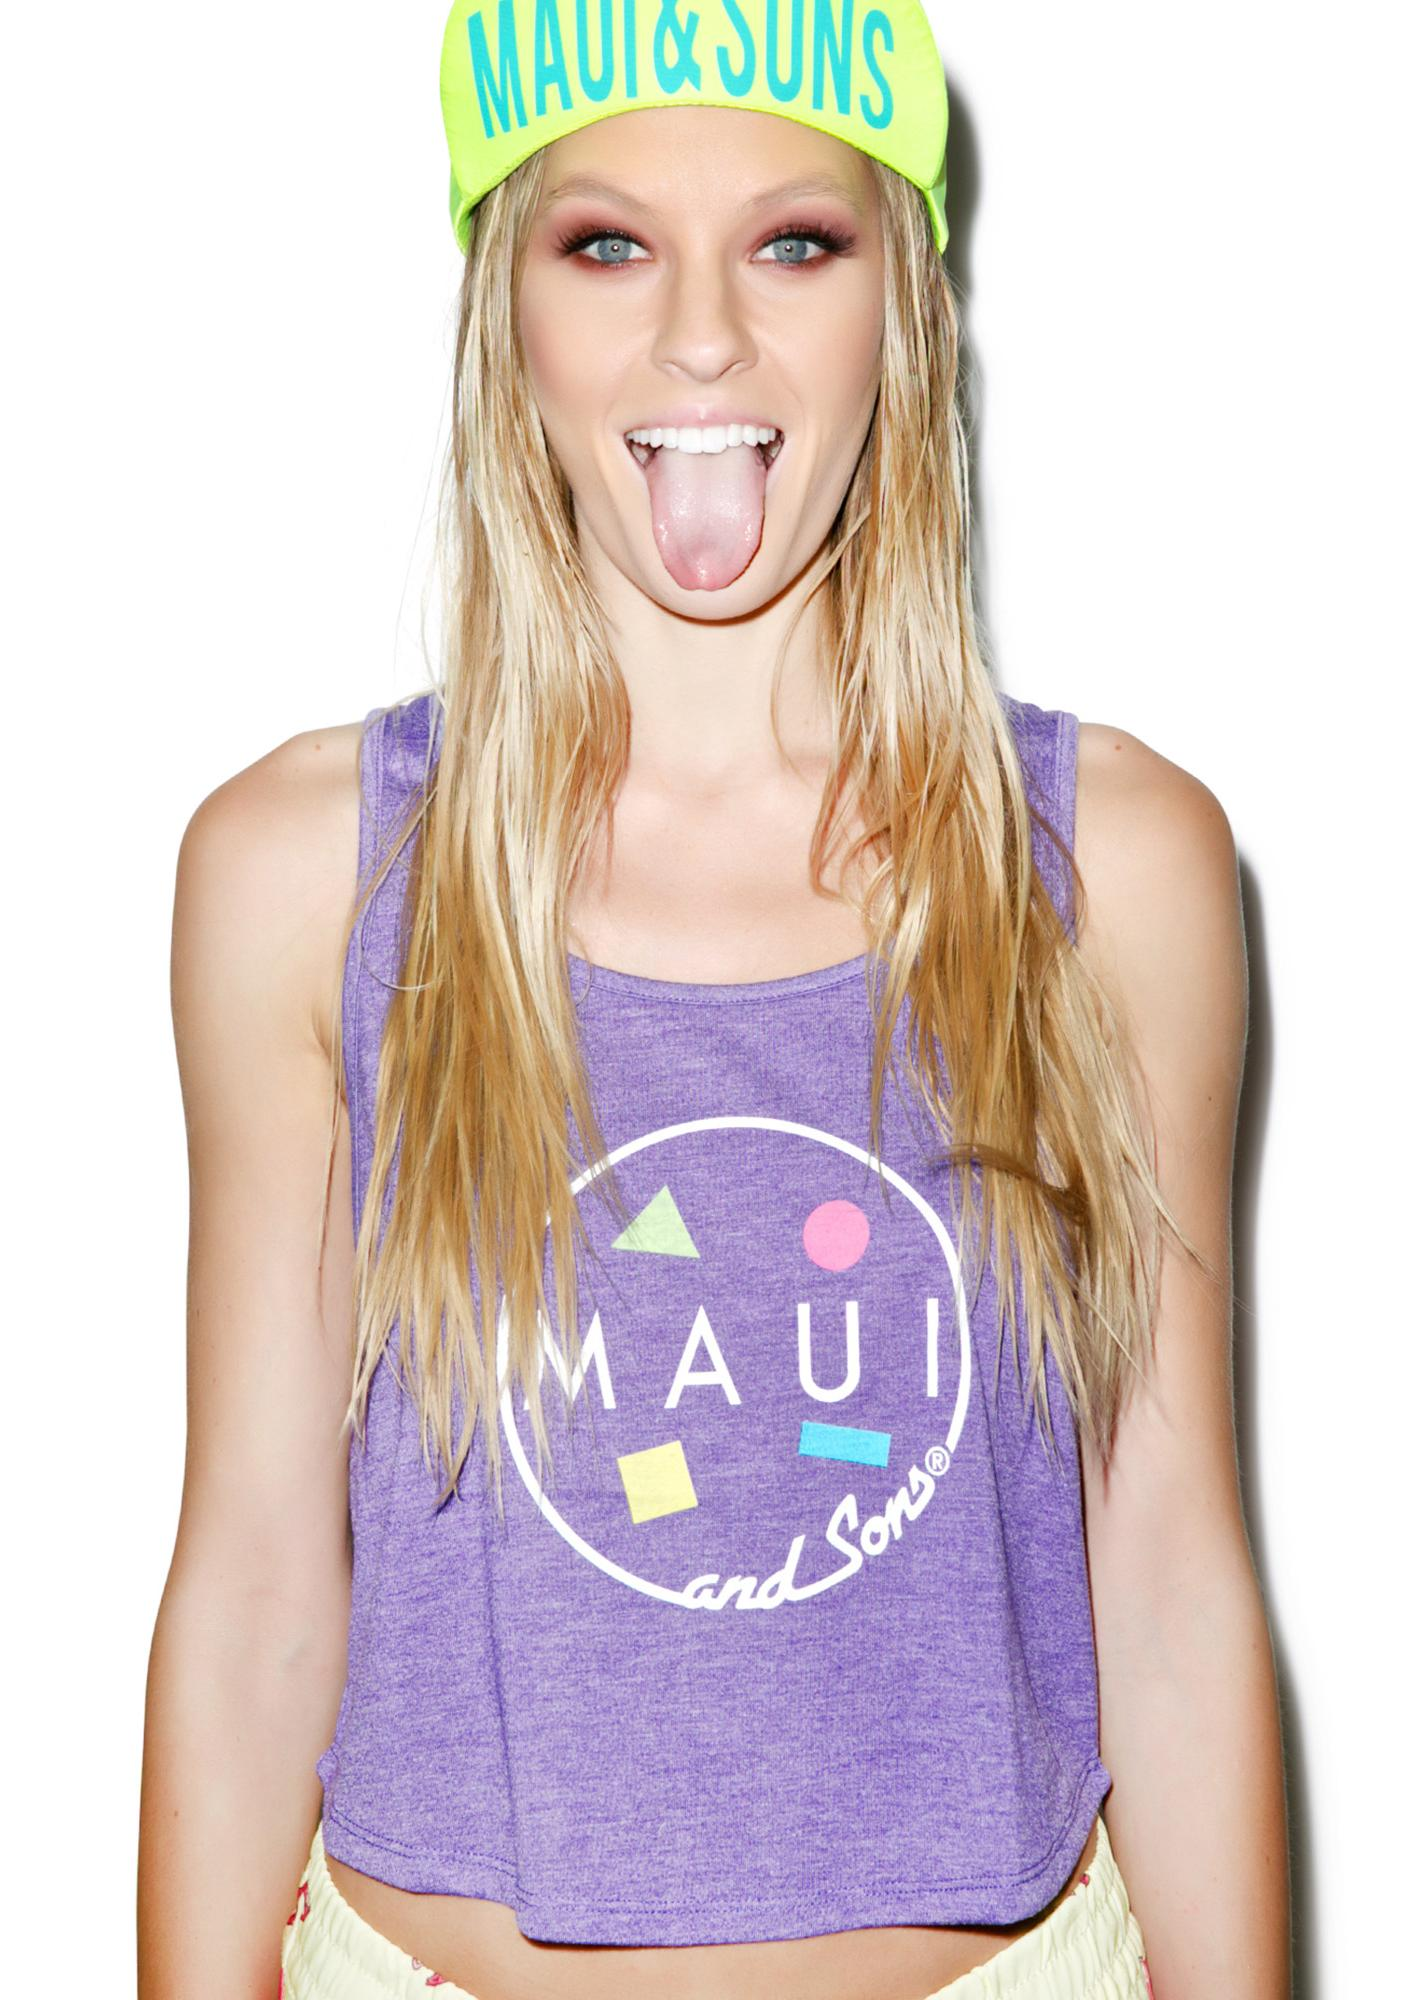 Maui and Sons Summer Lovin' Cropped Tank